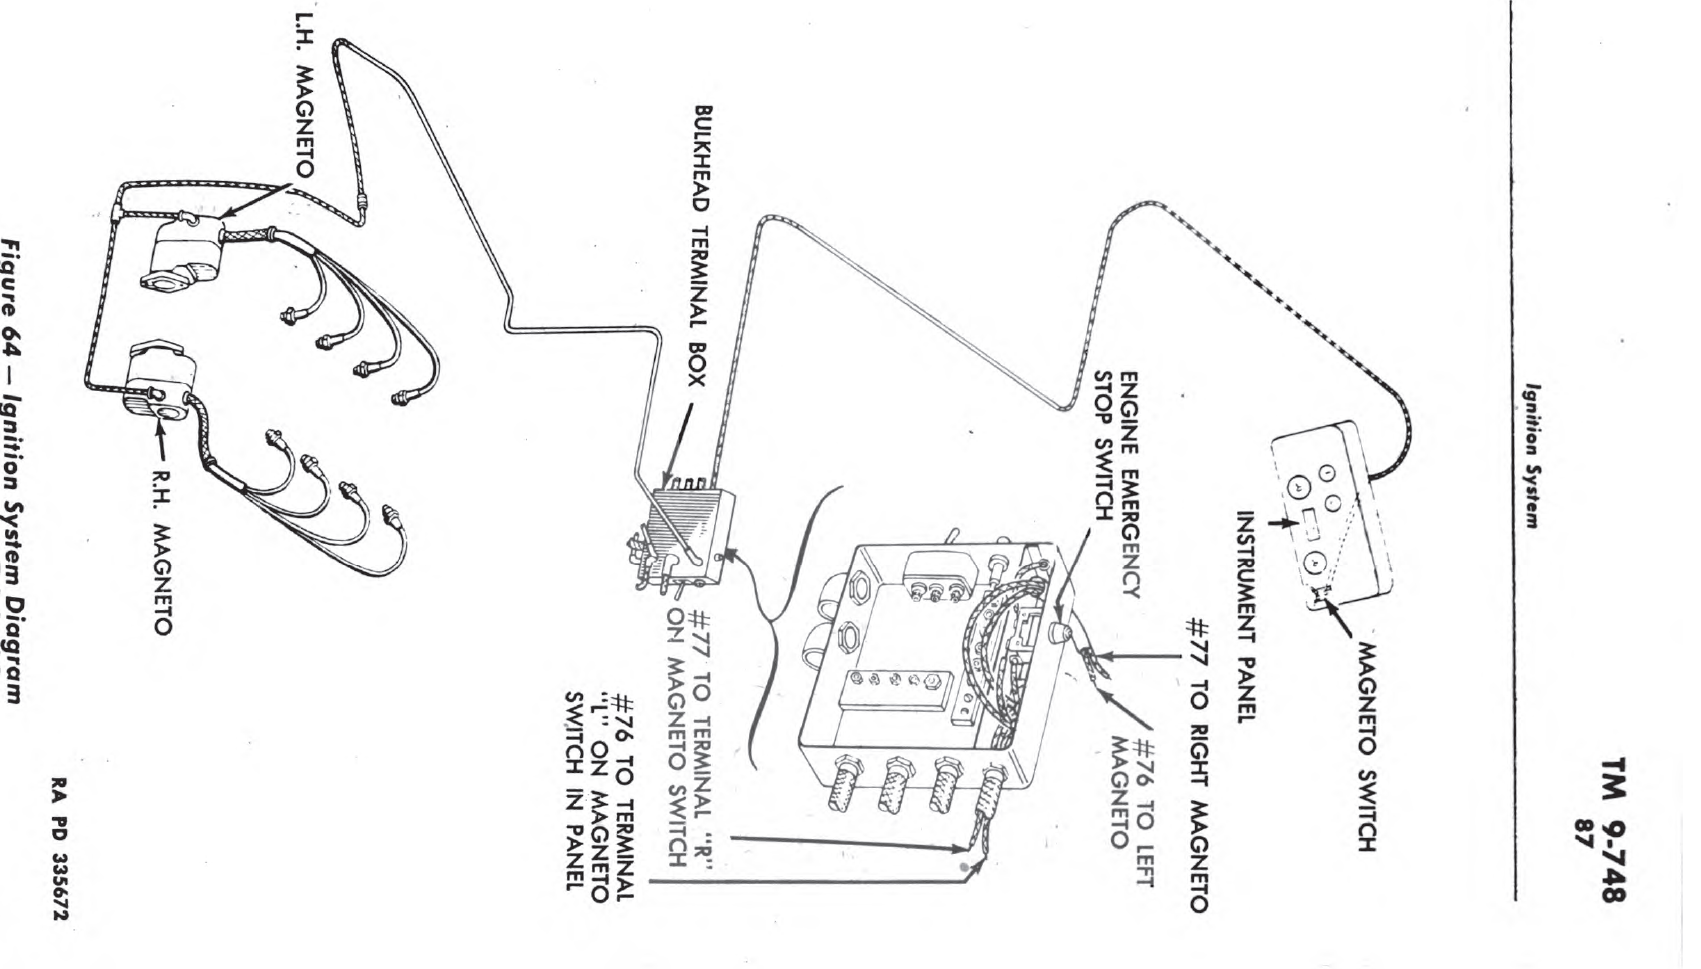 1982 Ford L8000 Wiring Diagram Ford Choke Wiring-Diagram